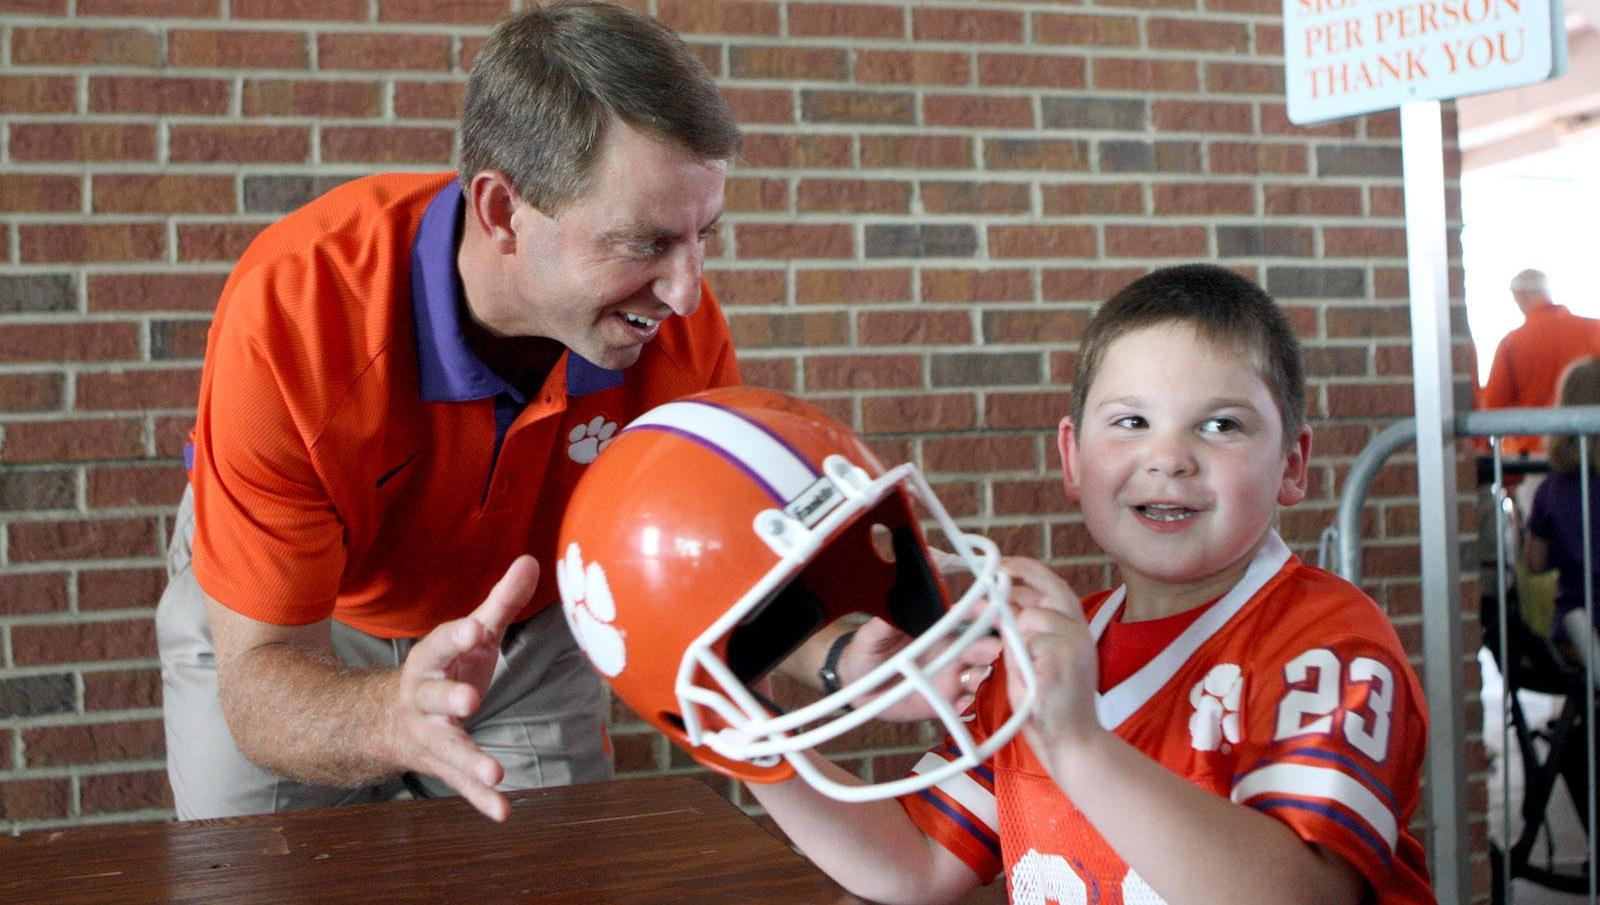 Clemson to Hold Fan Appreciation Day August 18